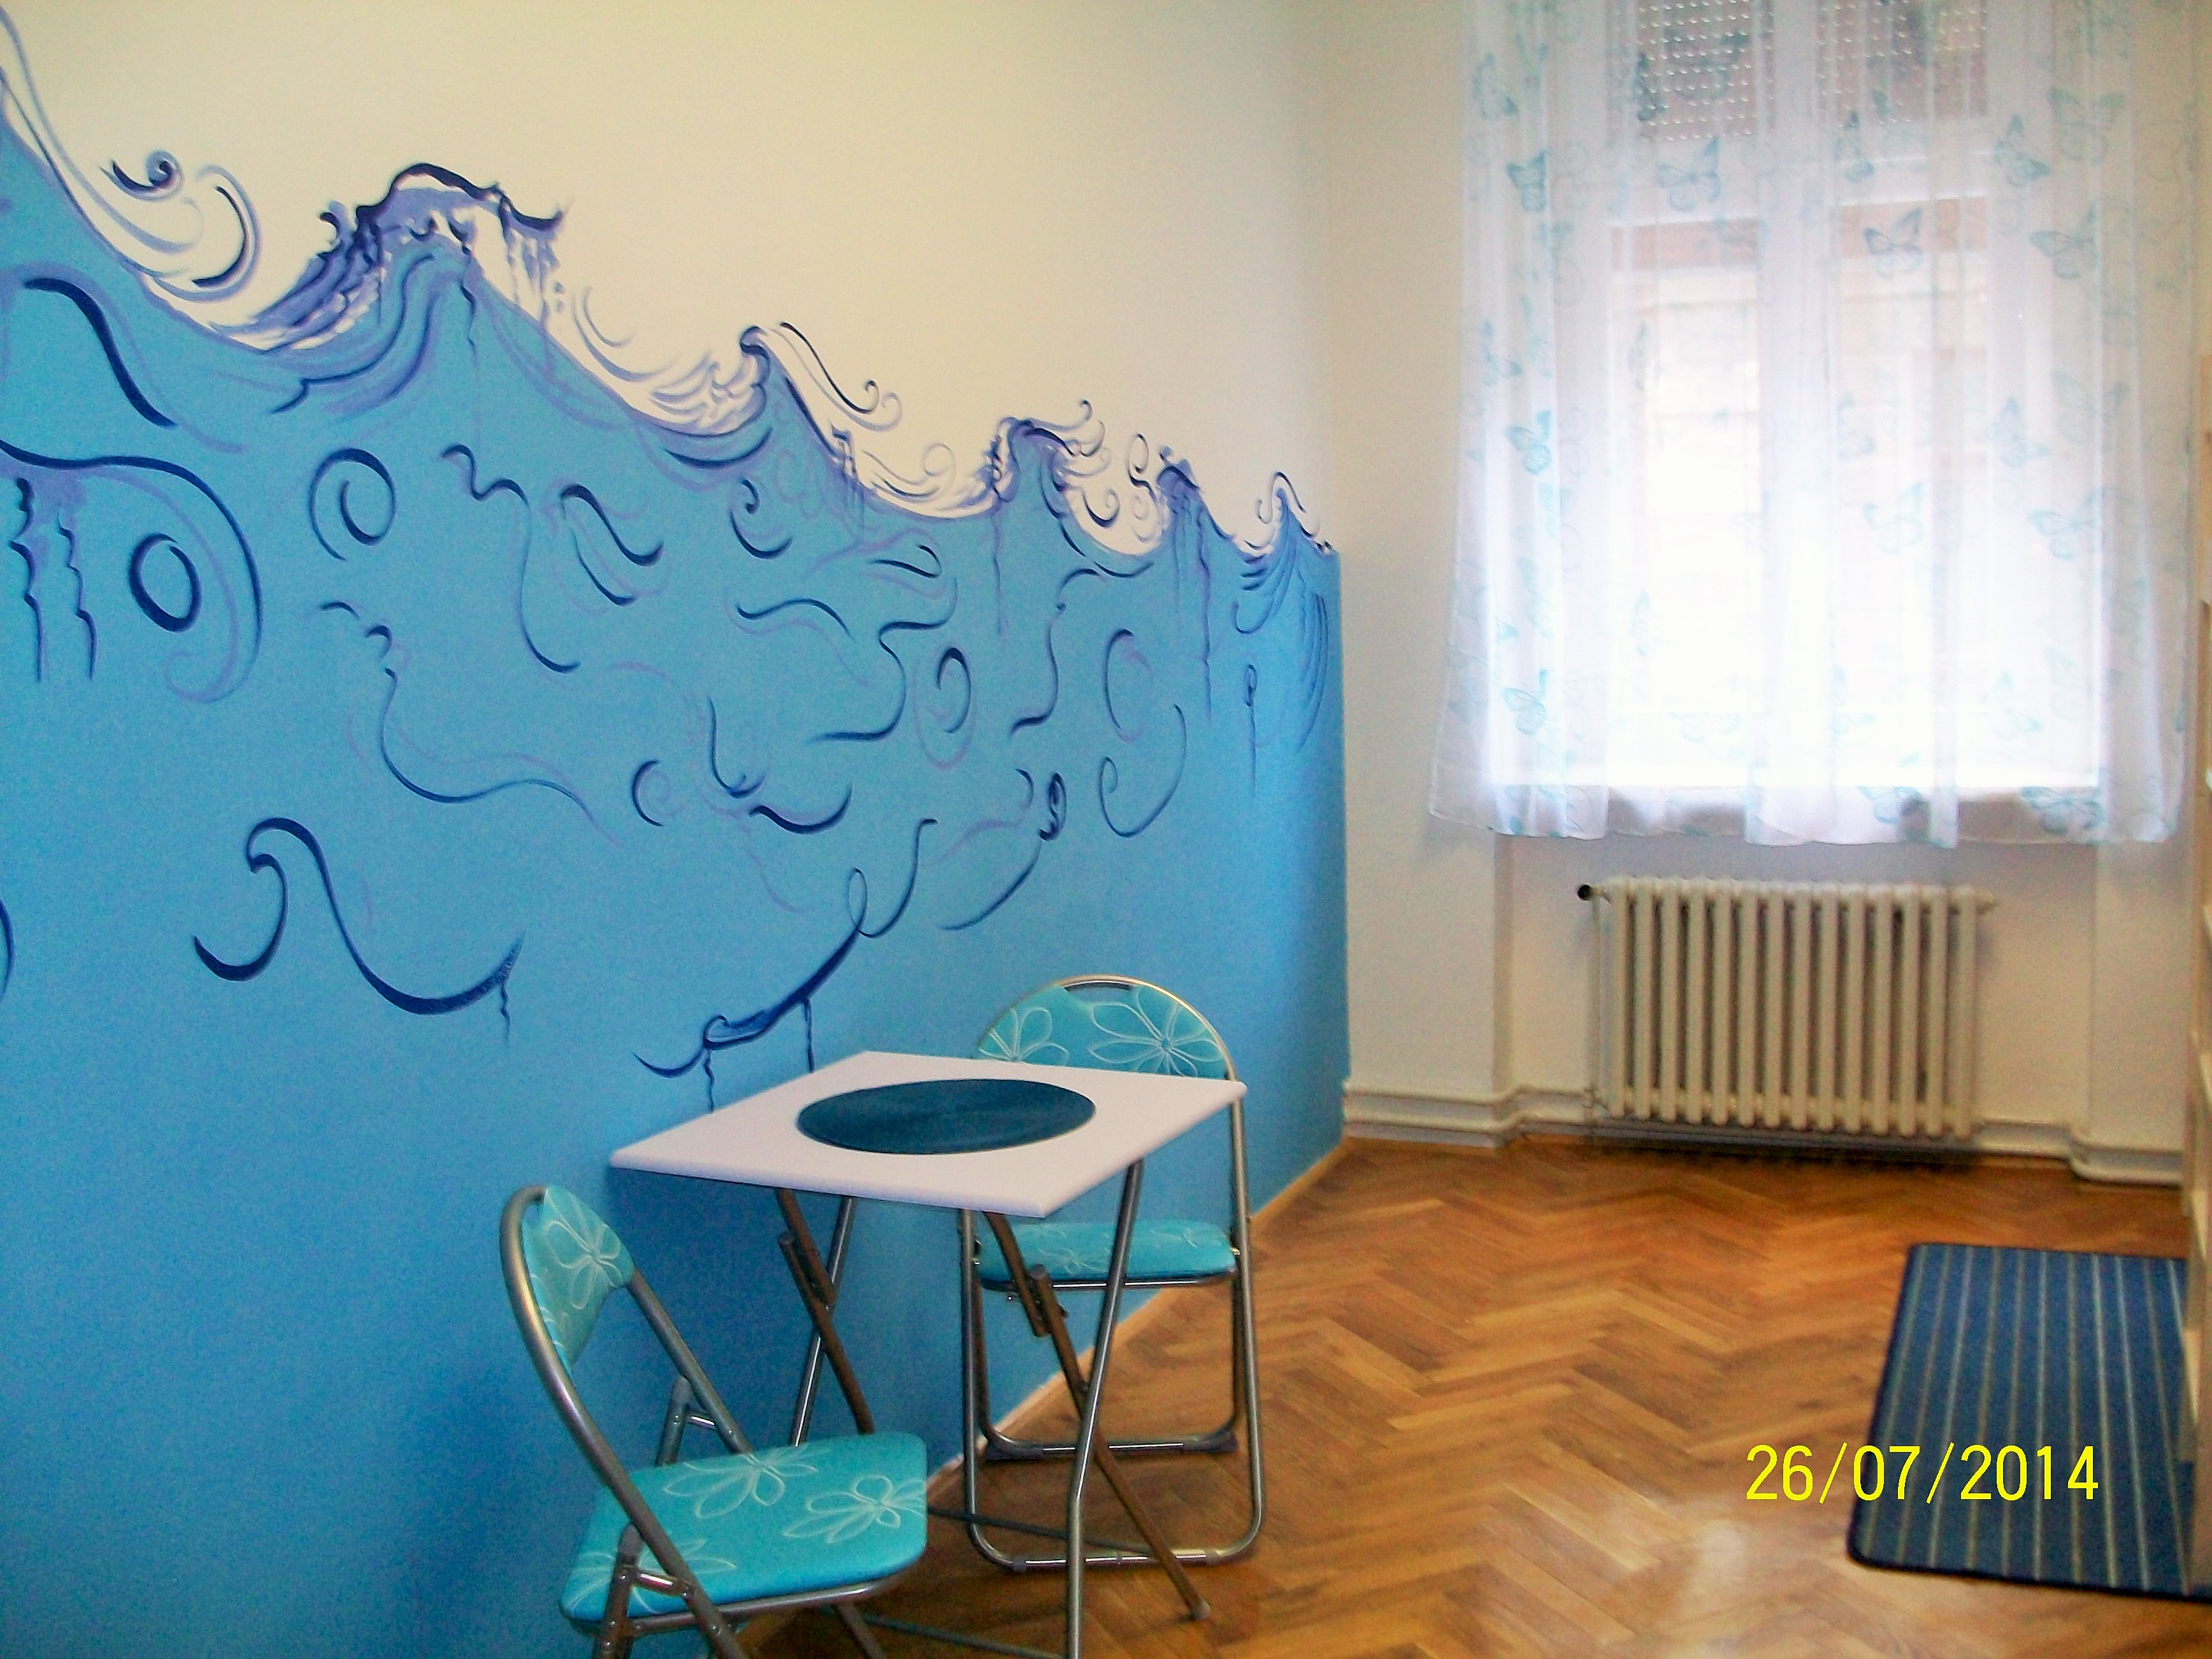 Interior room in the hostel Zagreb